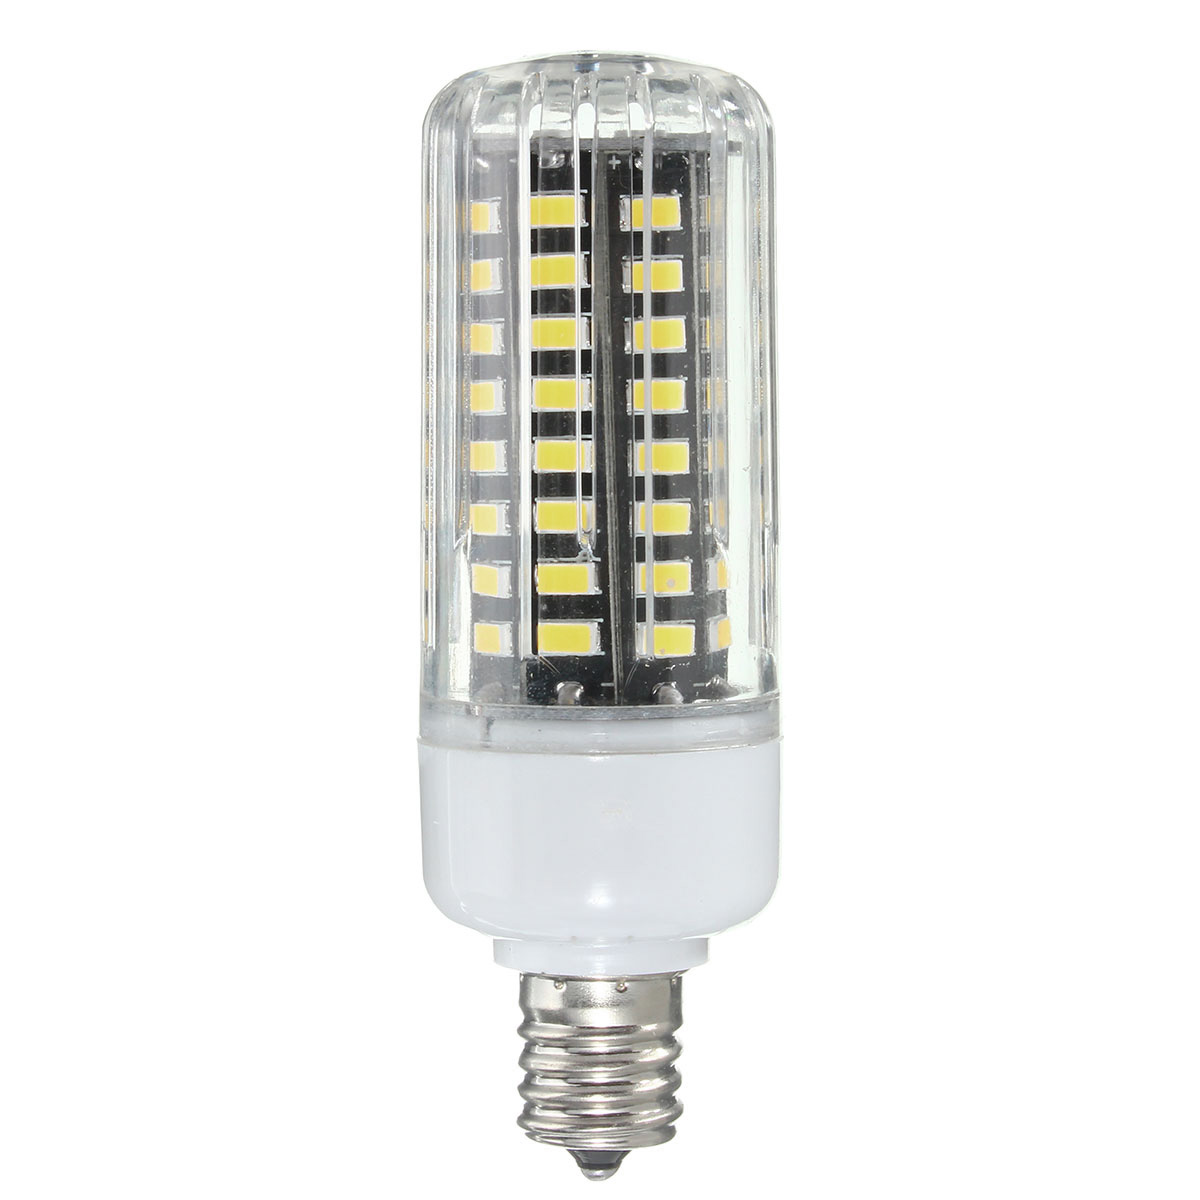 e27 e14 e12 e17 gu10 b22 led corn bulb 7w 72 smd 5736 led. Black Bedroom Furniture Sets. Home Design Ideas